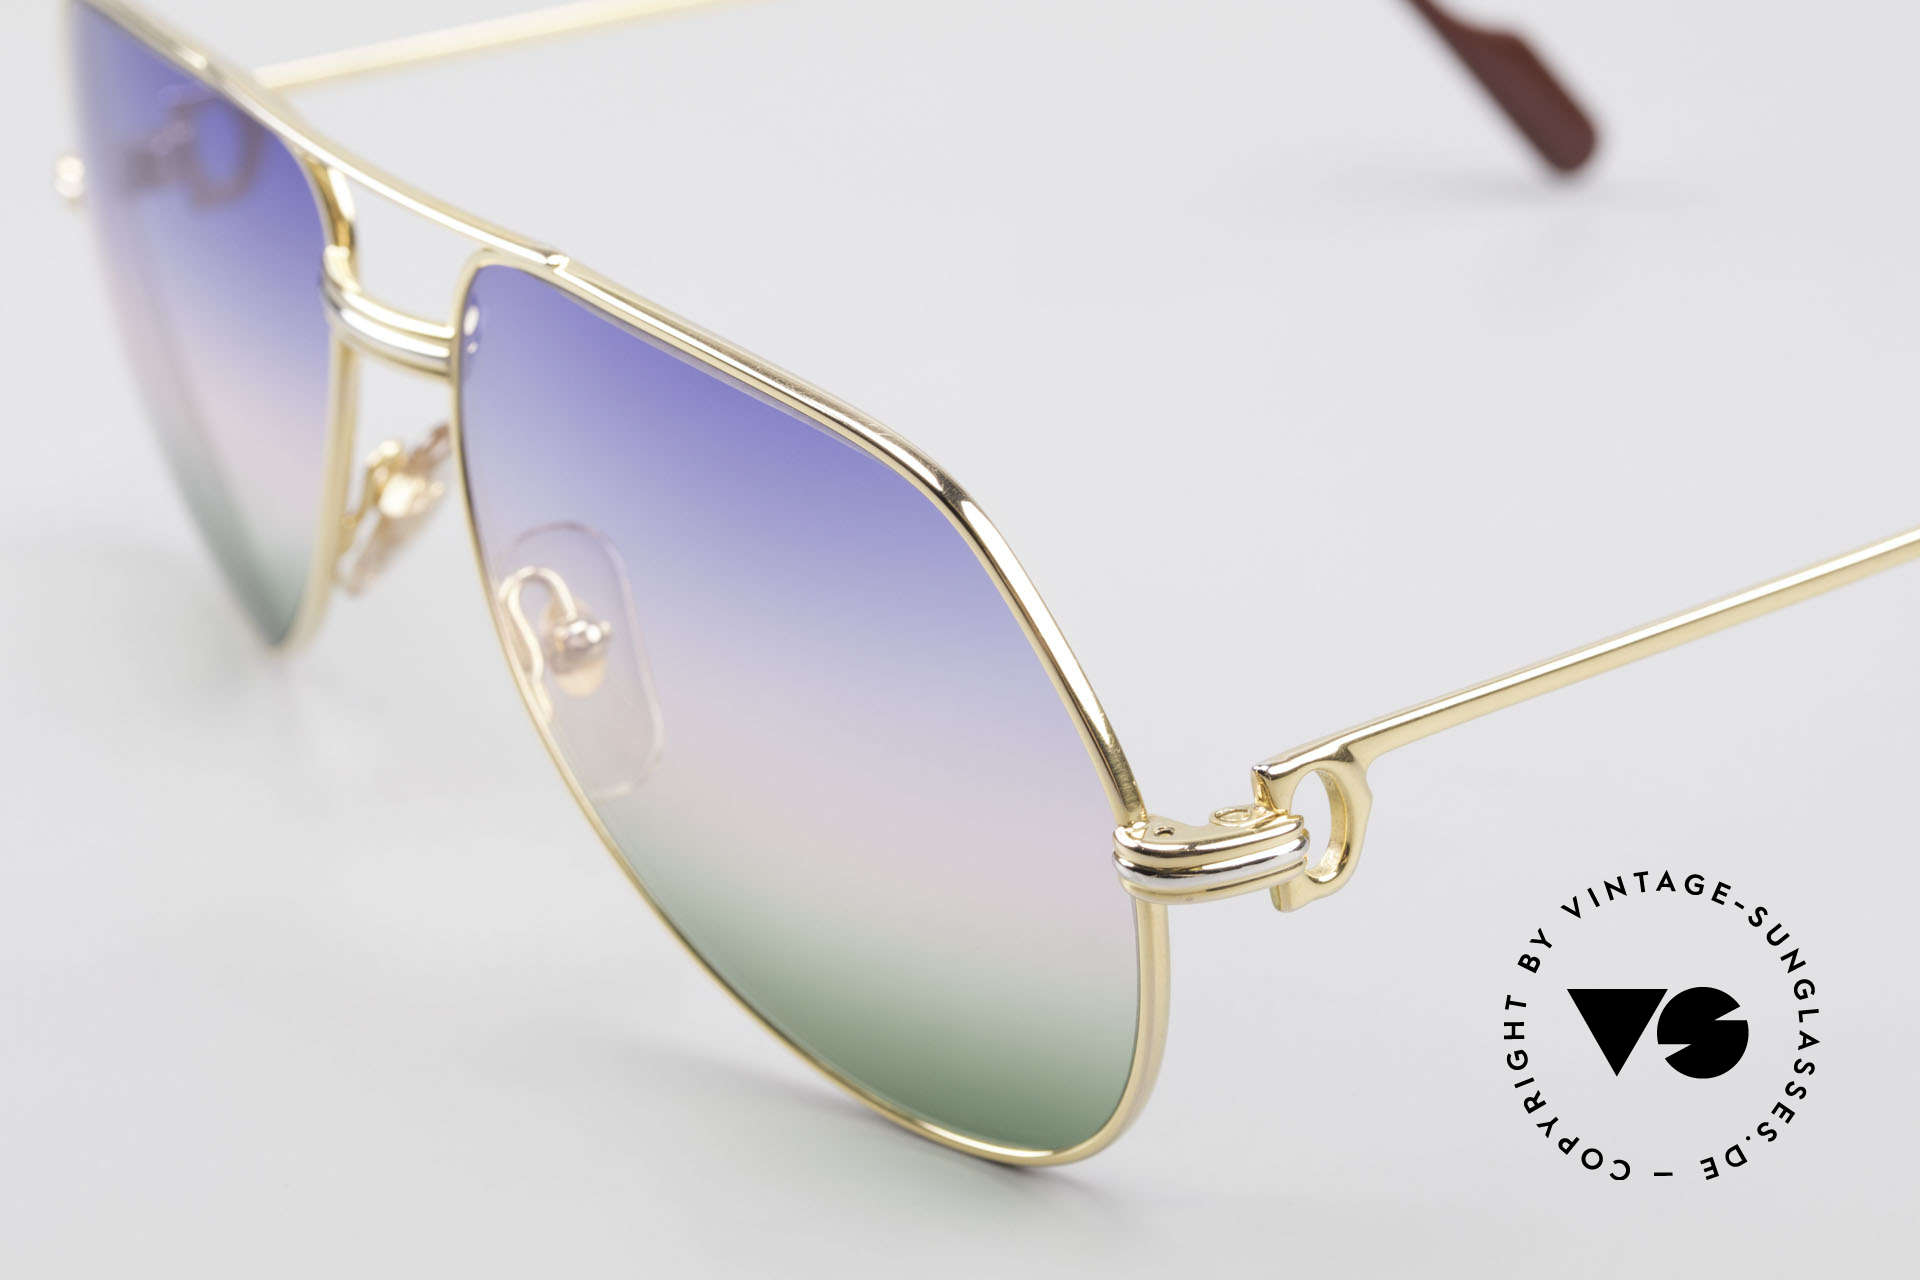 Cartier Vendome LC - M Michael Douglas Sunglasses, worn by actor Michael Douglas (movie 'Wall Street', '87), Made for Men